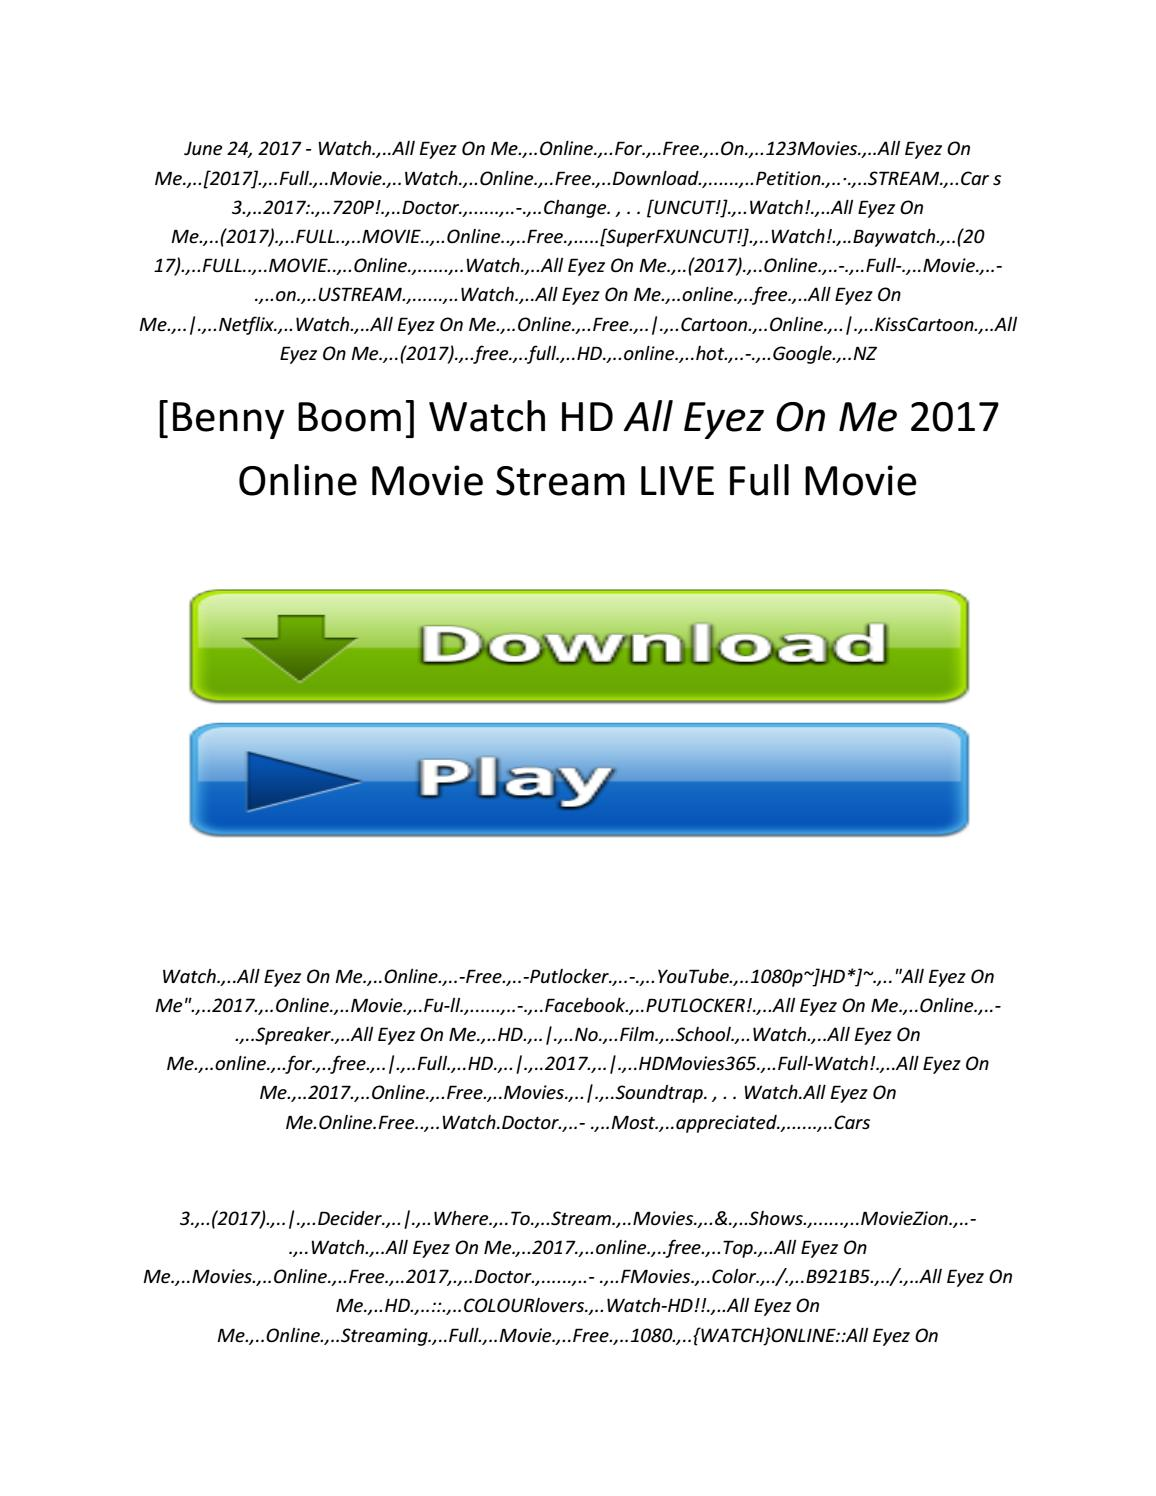 All Eyez On Me Streaming : streaming, Https://archive.org/details/fav-_sky-tv_watch_all_eyez_on_me_2017_english_online_free_1080px_, Arrenabina, Issuu